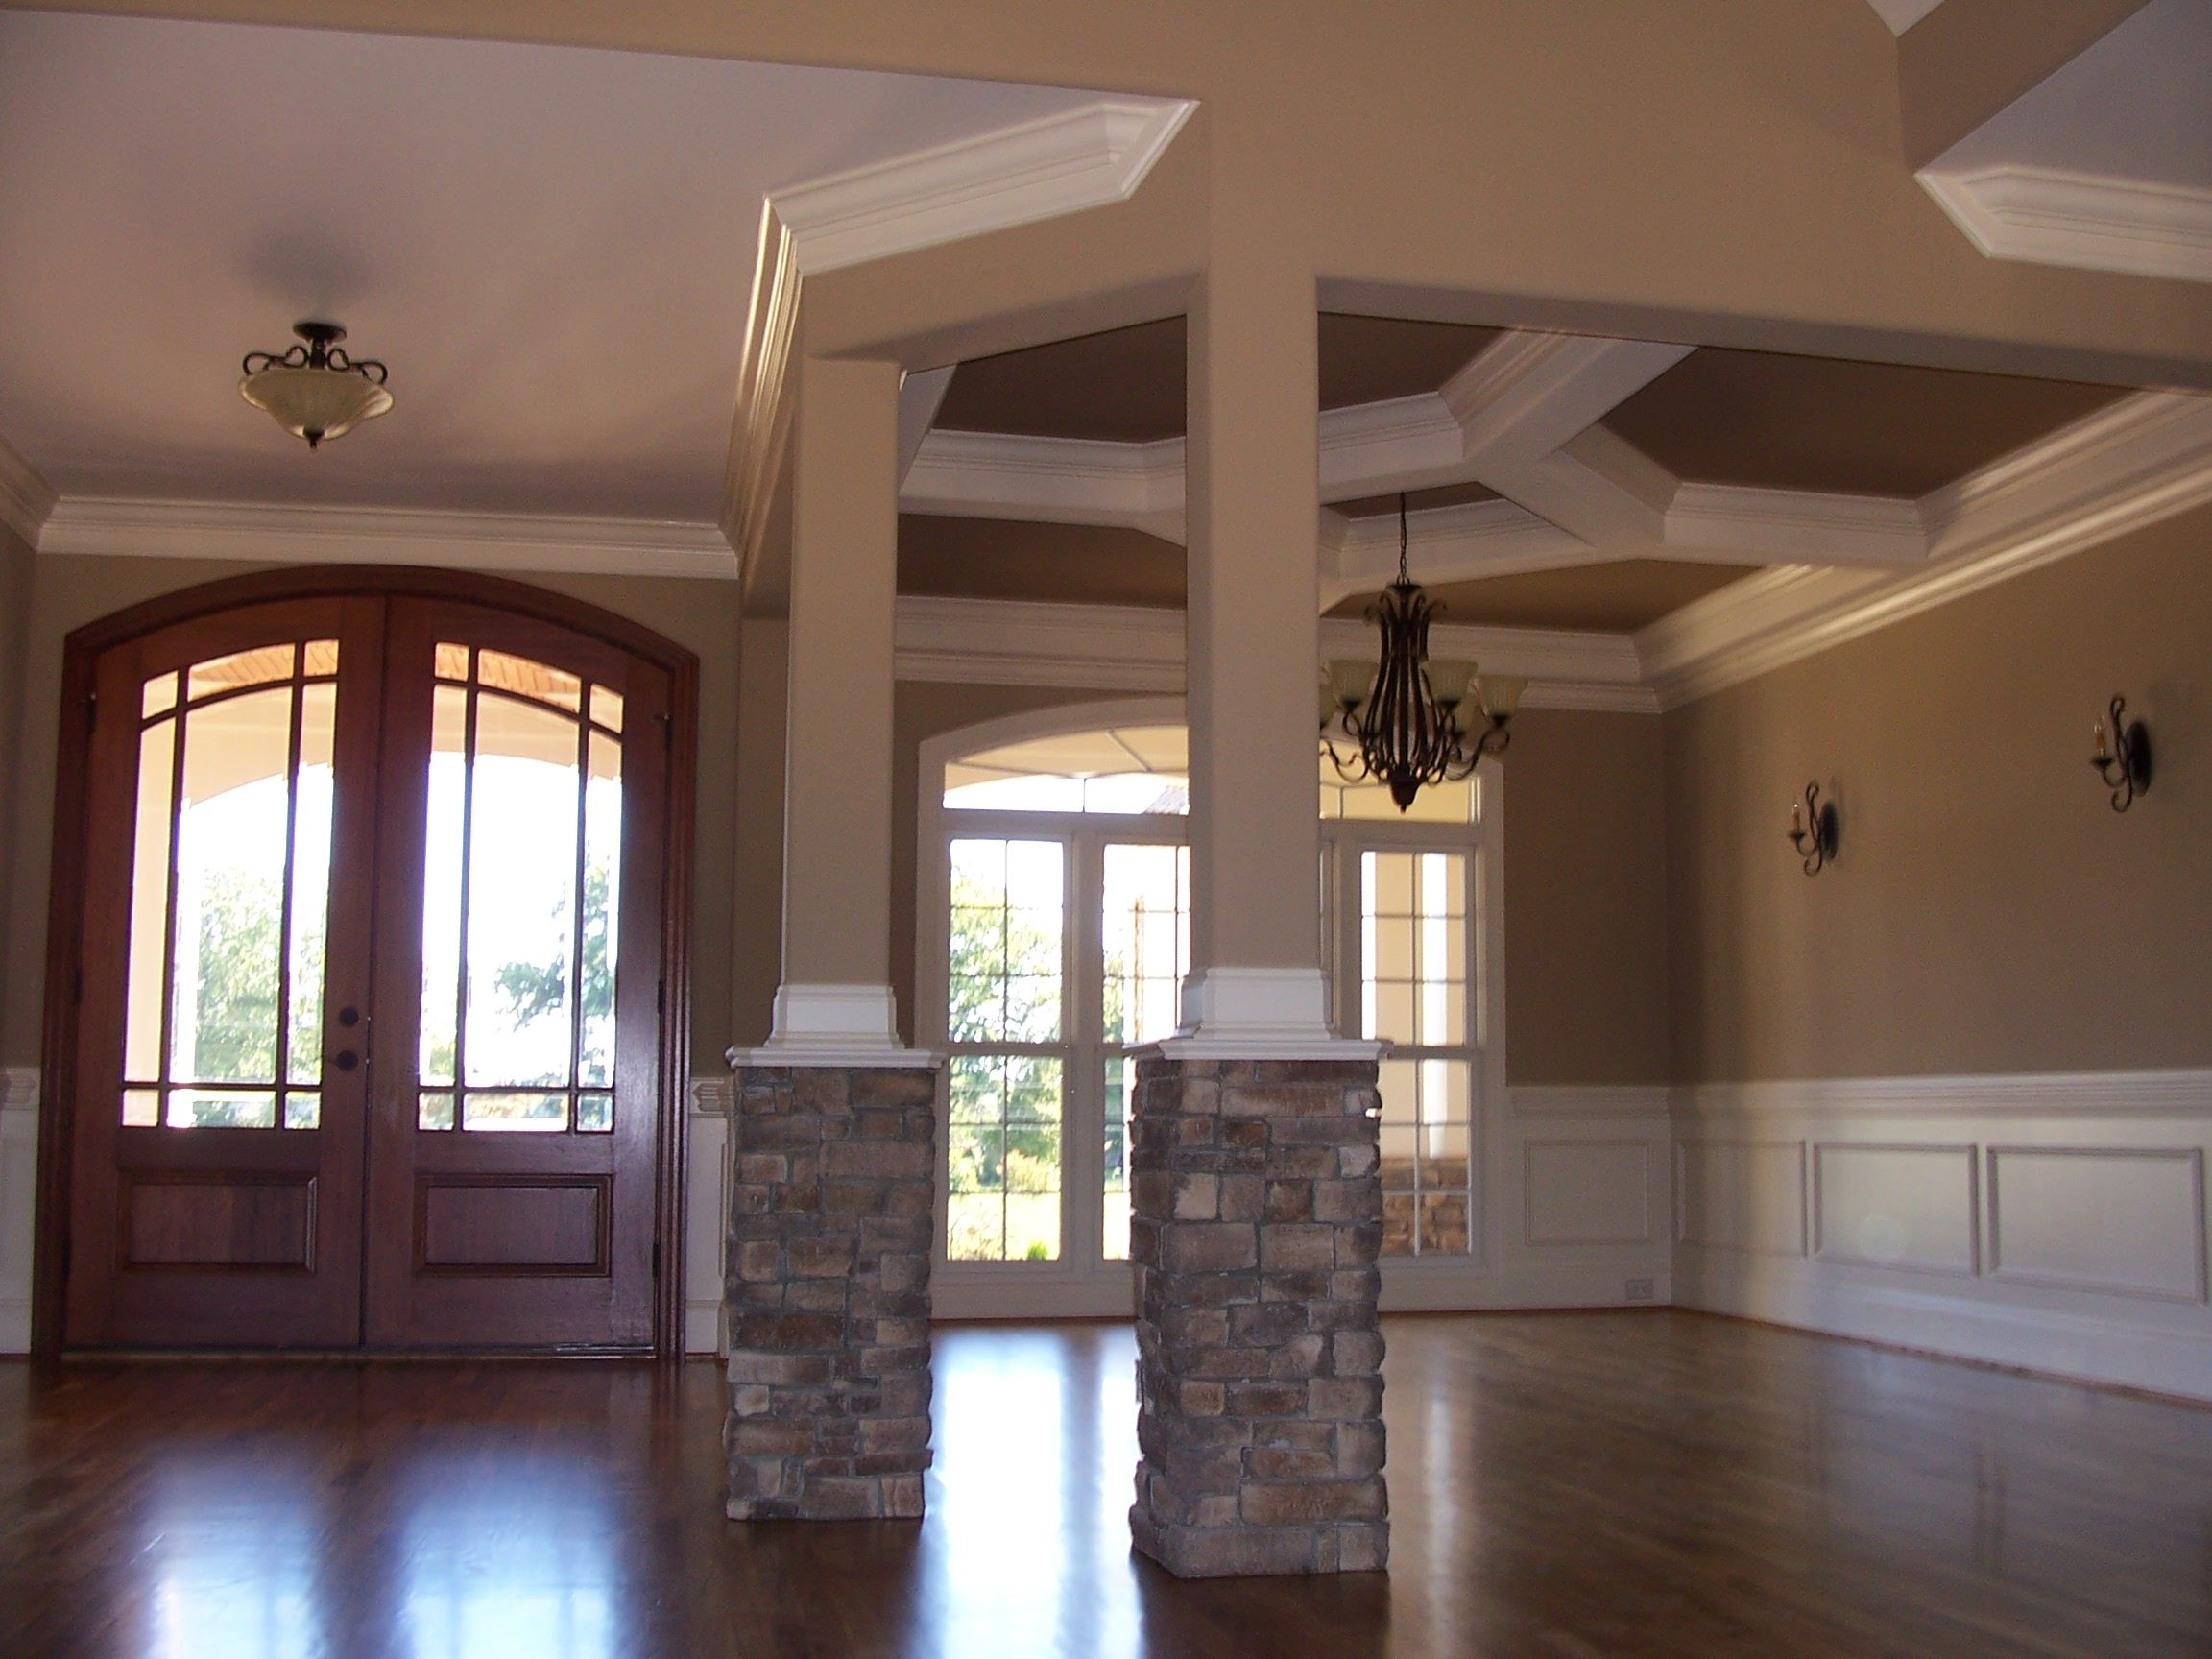 Home Interior Painting Exterior Magnificent Pictures Of Interior Paint Colors  Phone 704.746.8170 ~ Fax . Design Ideas